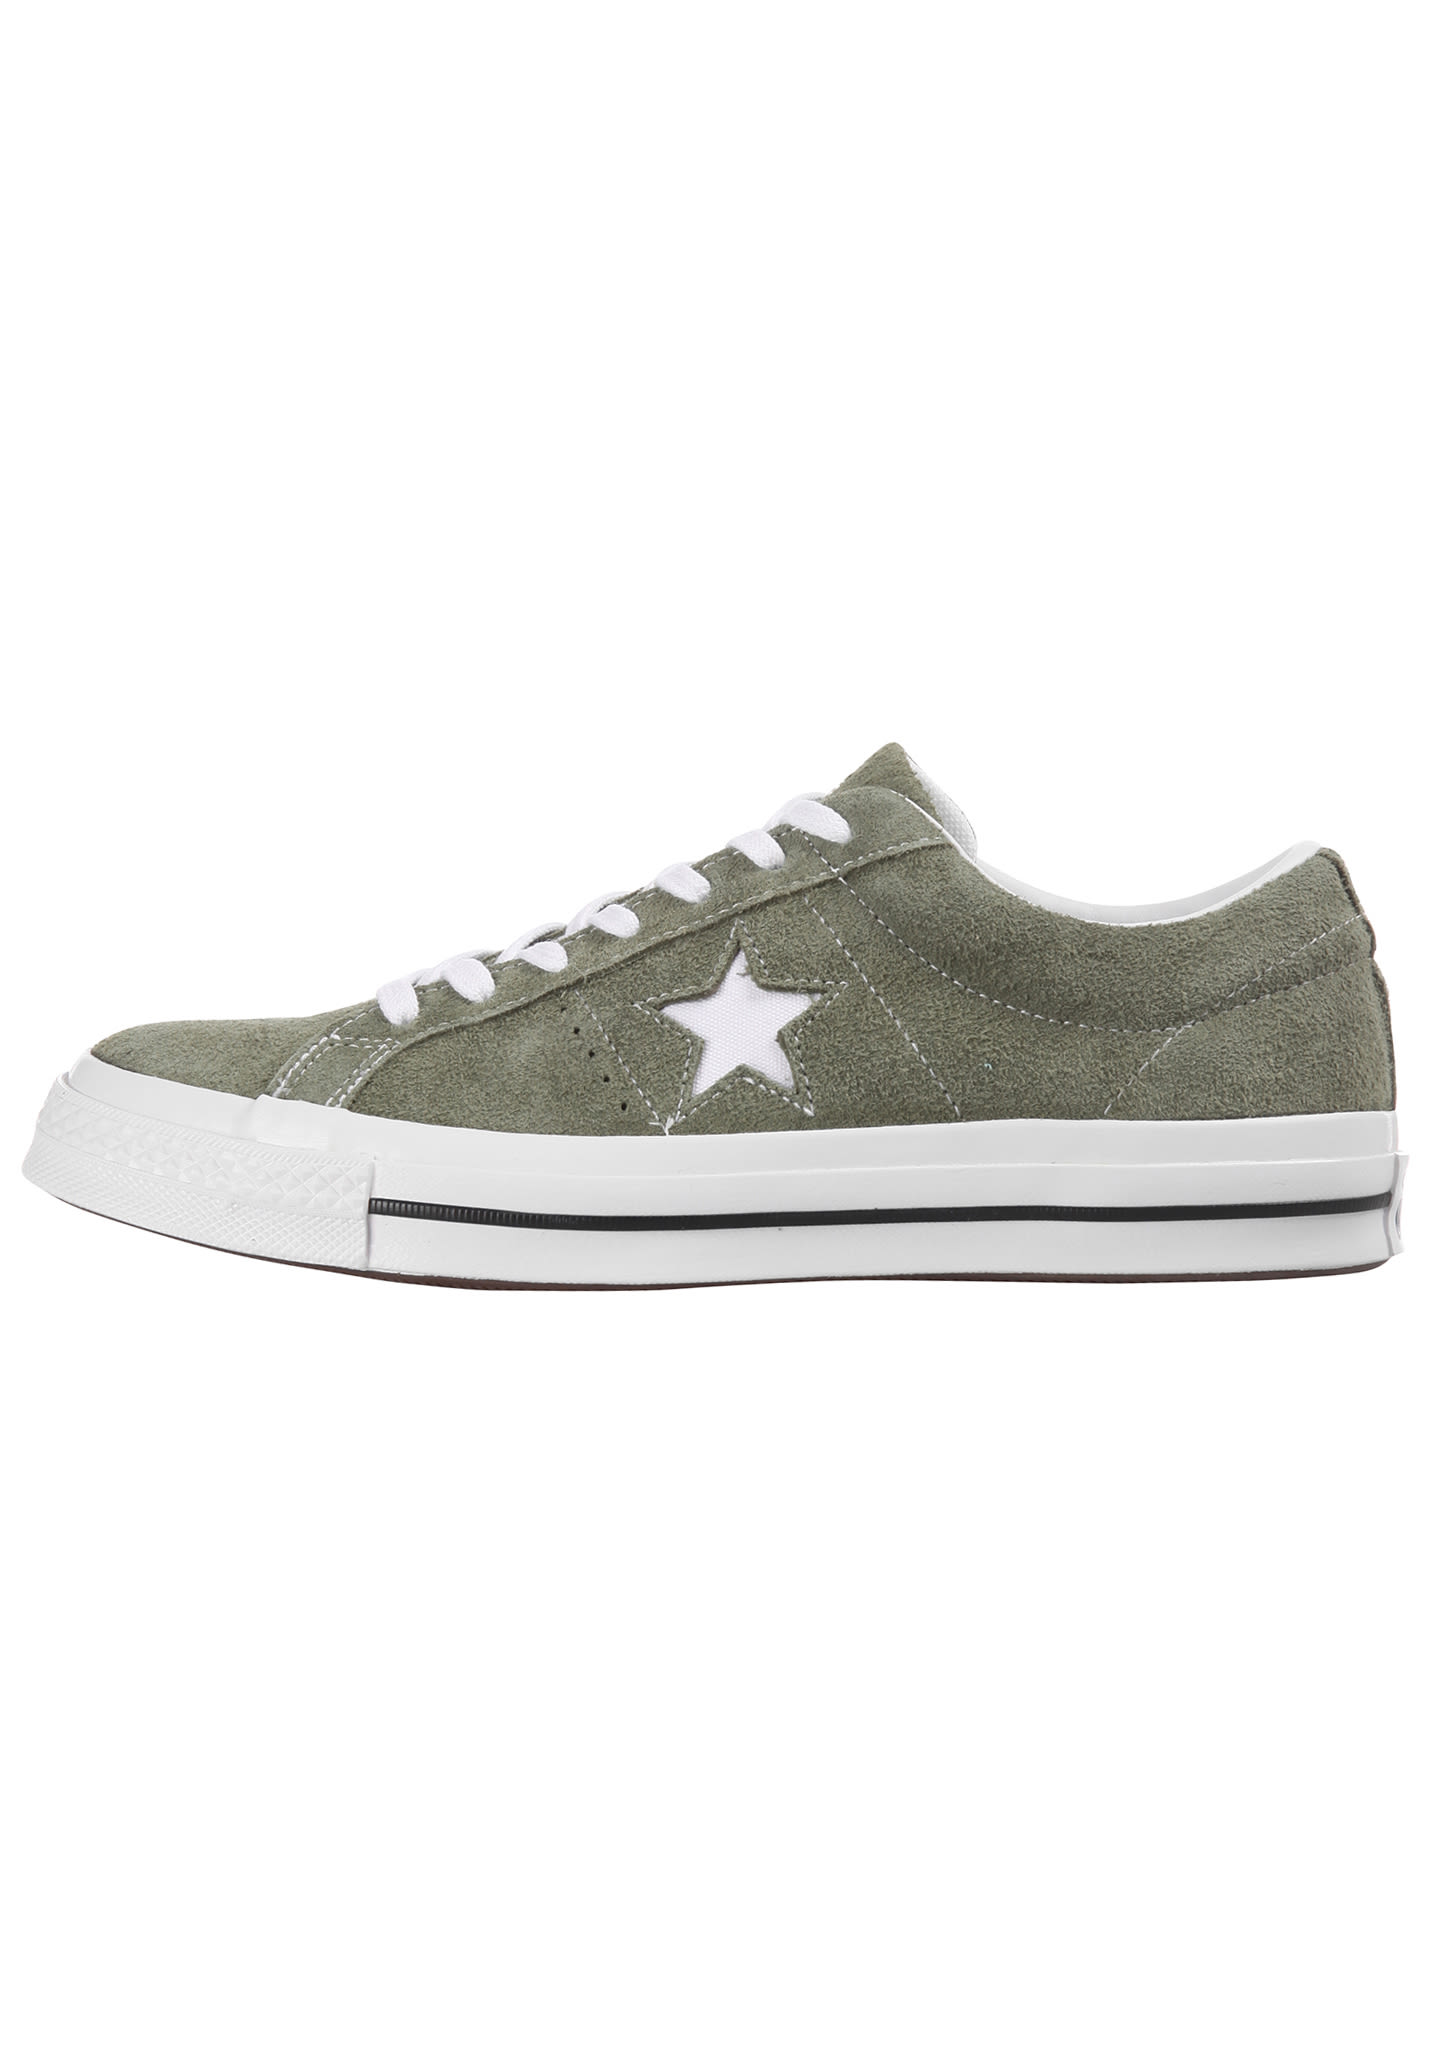 converse one star ox hombre